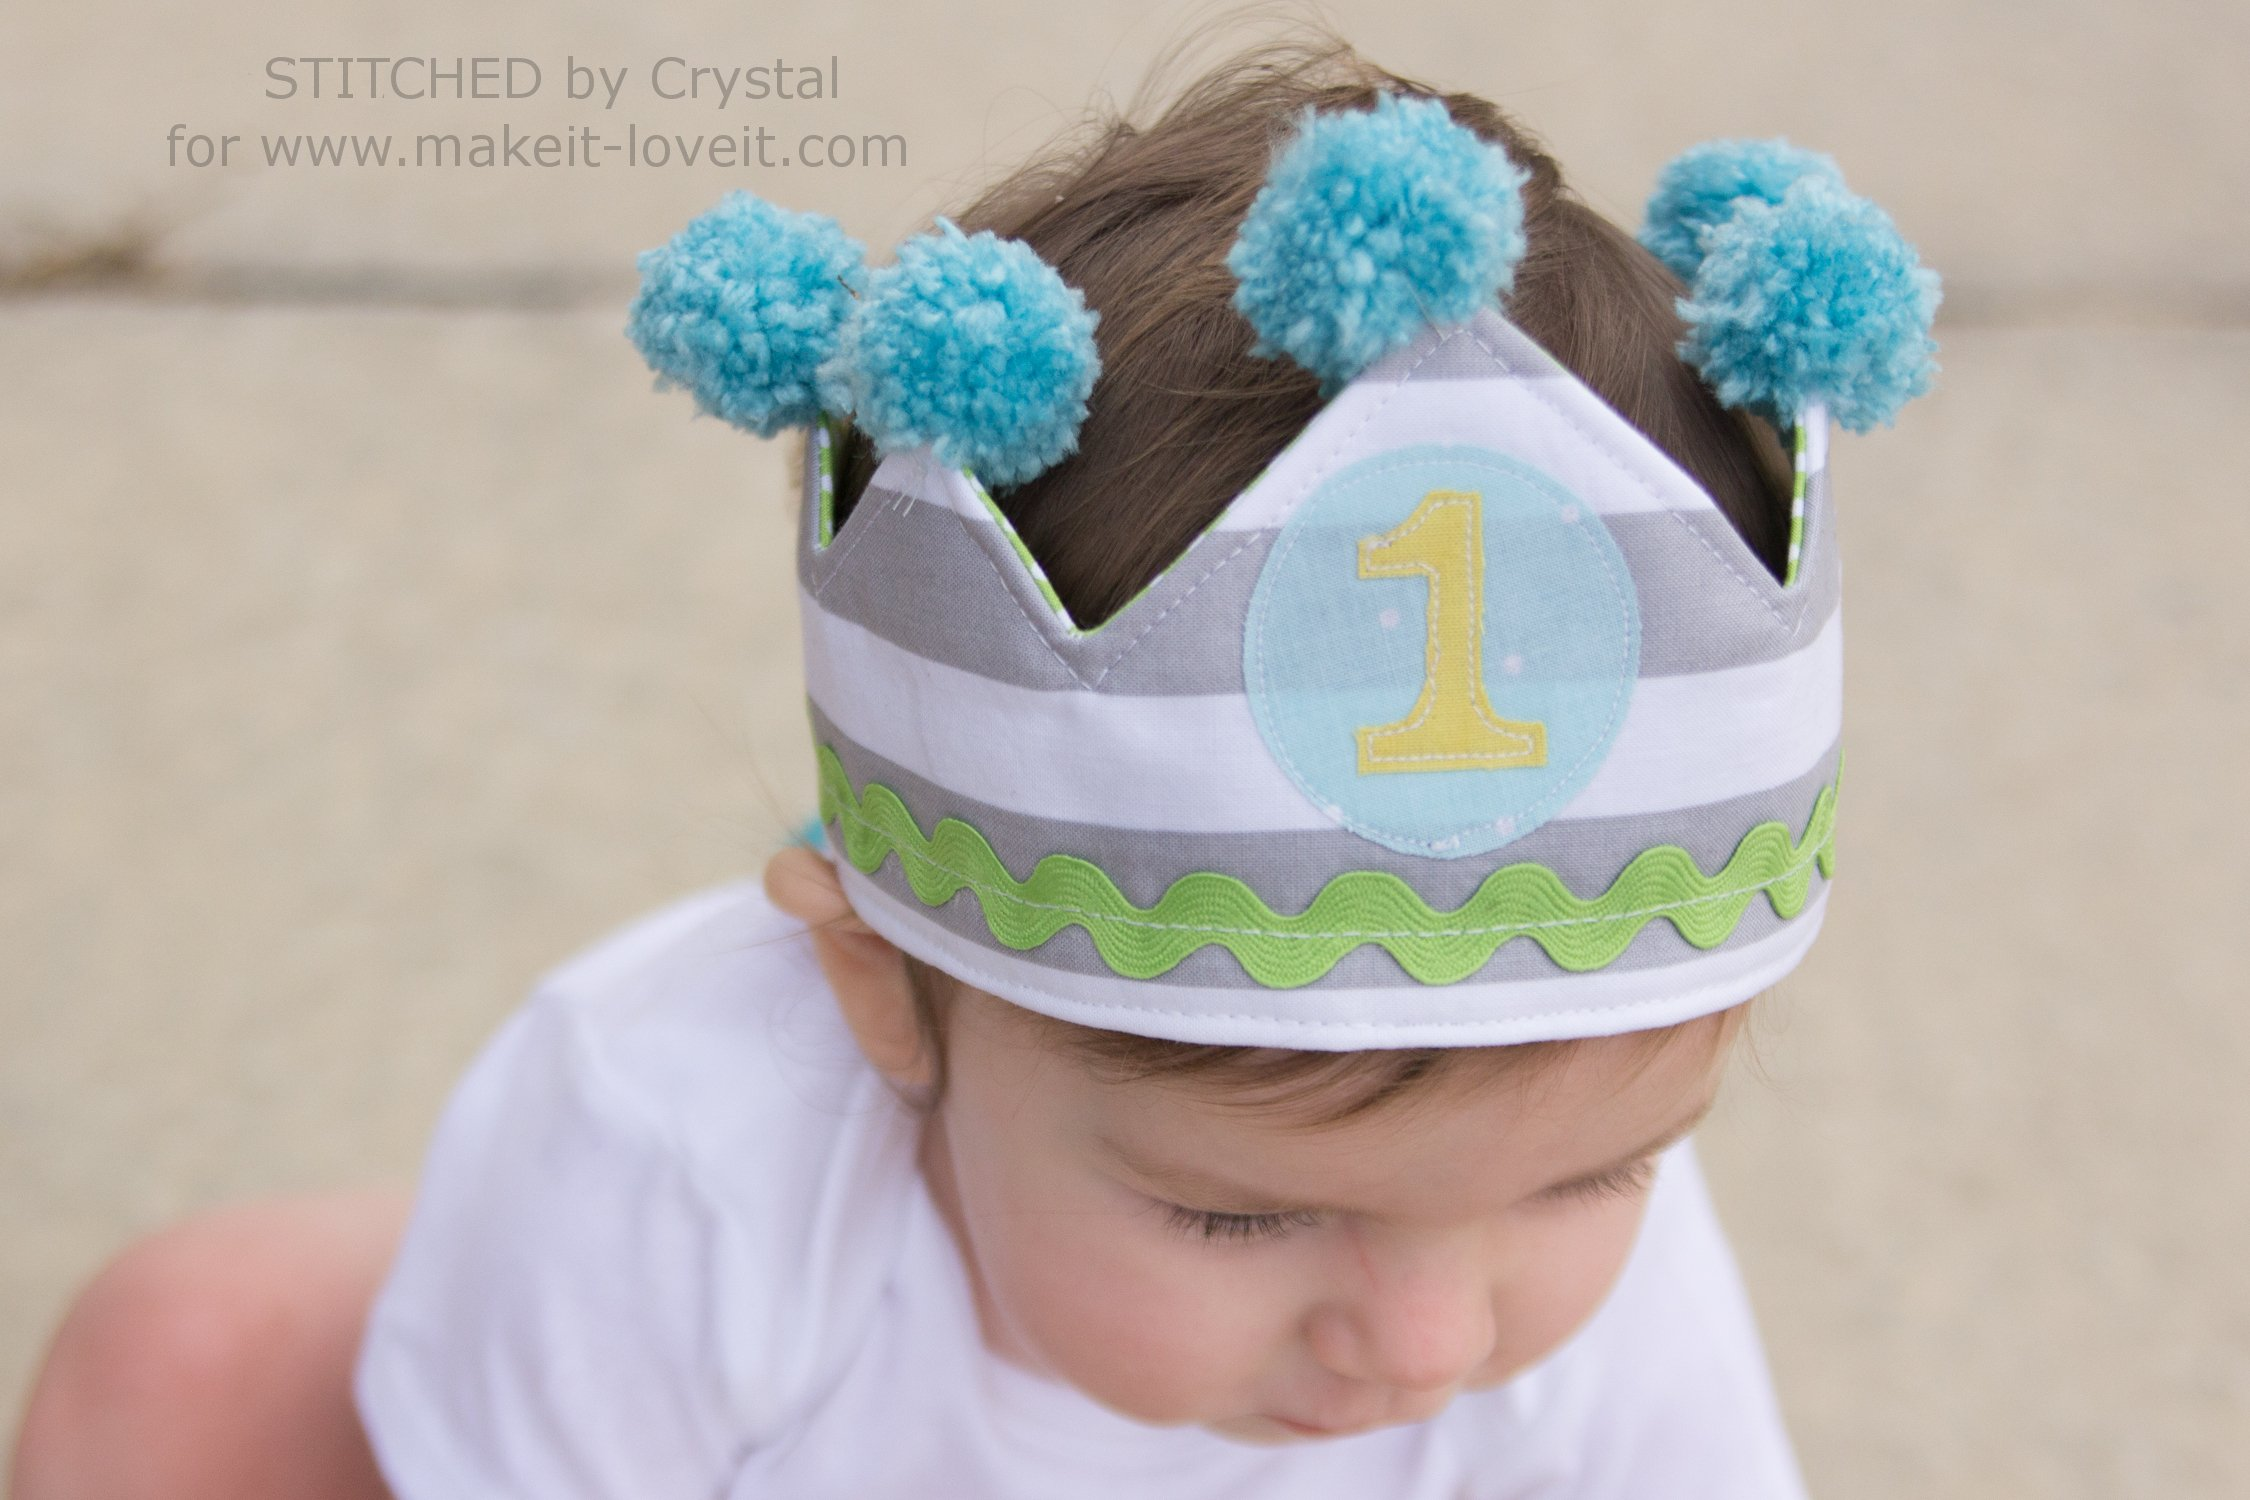 DIY Reversible Fabric Crowns...for Parties or Play! | via makeit-loveit.com